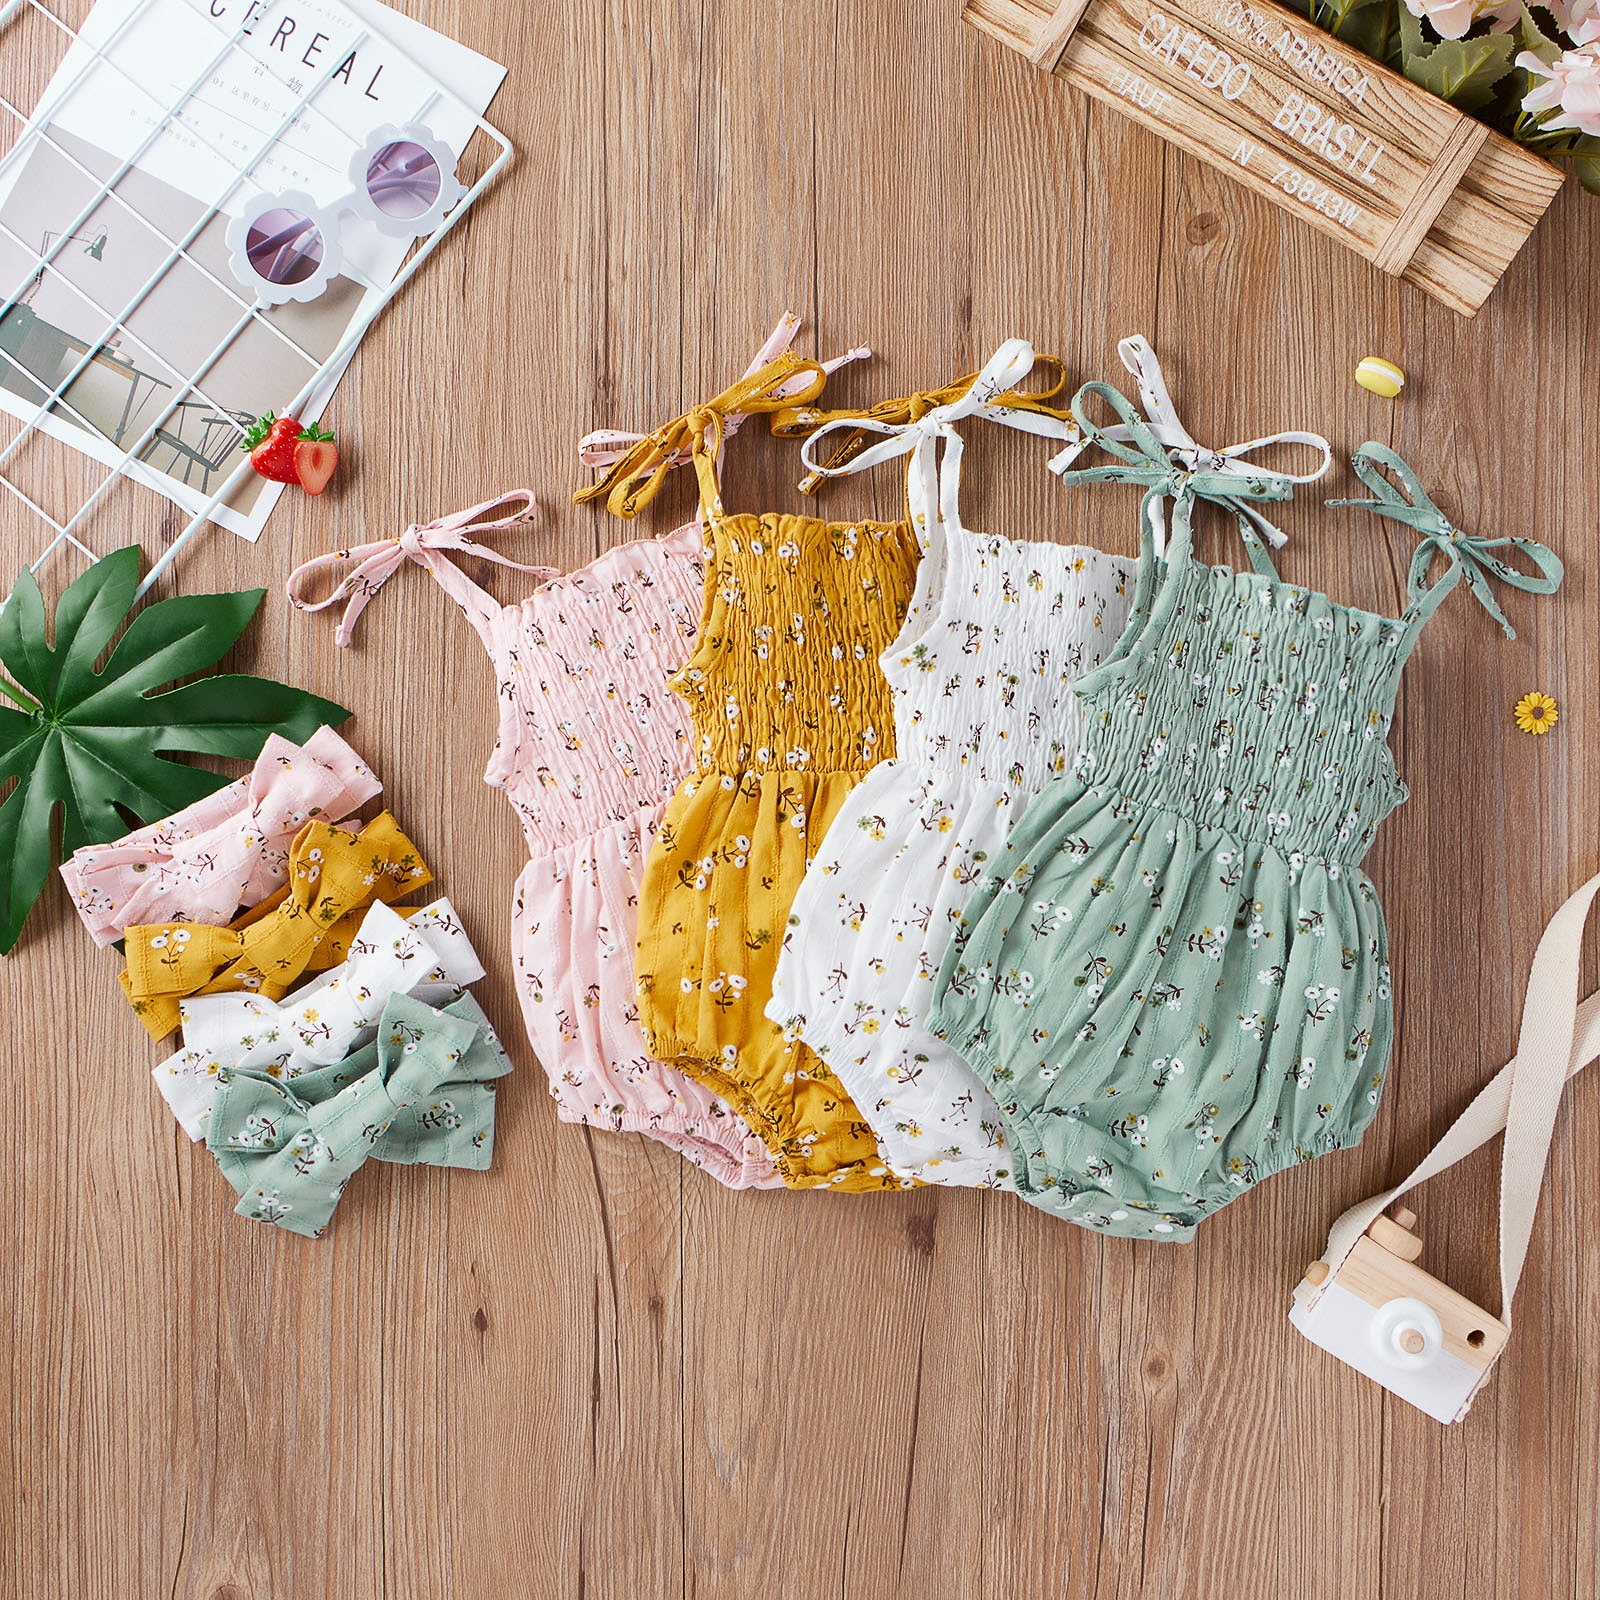 Infant Baby Floral Printed Sleeveless Romper Bodysuit Bowtie Headband Outfit vetement fille ropa ni�